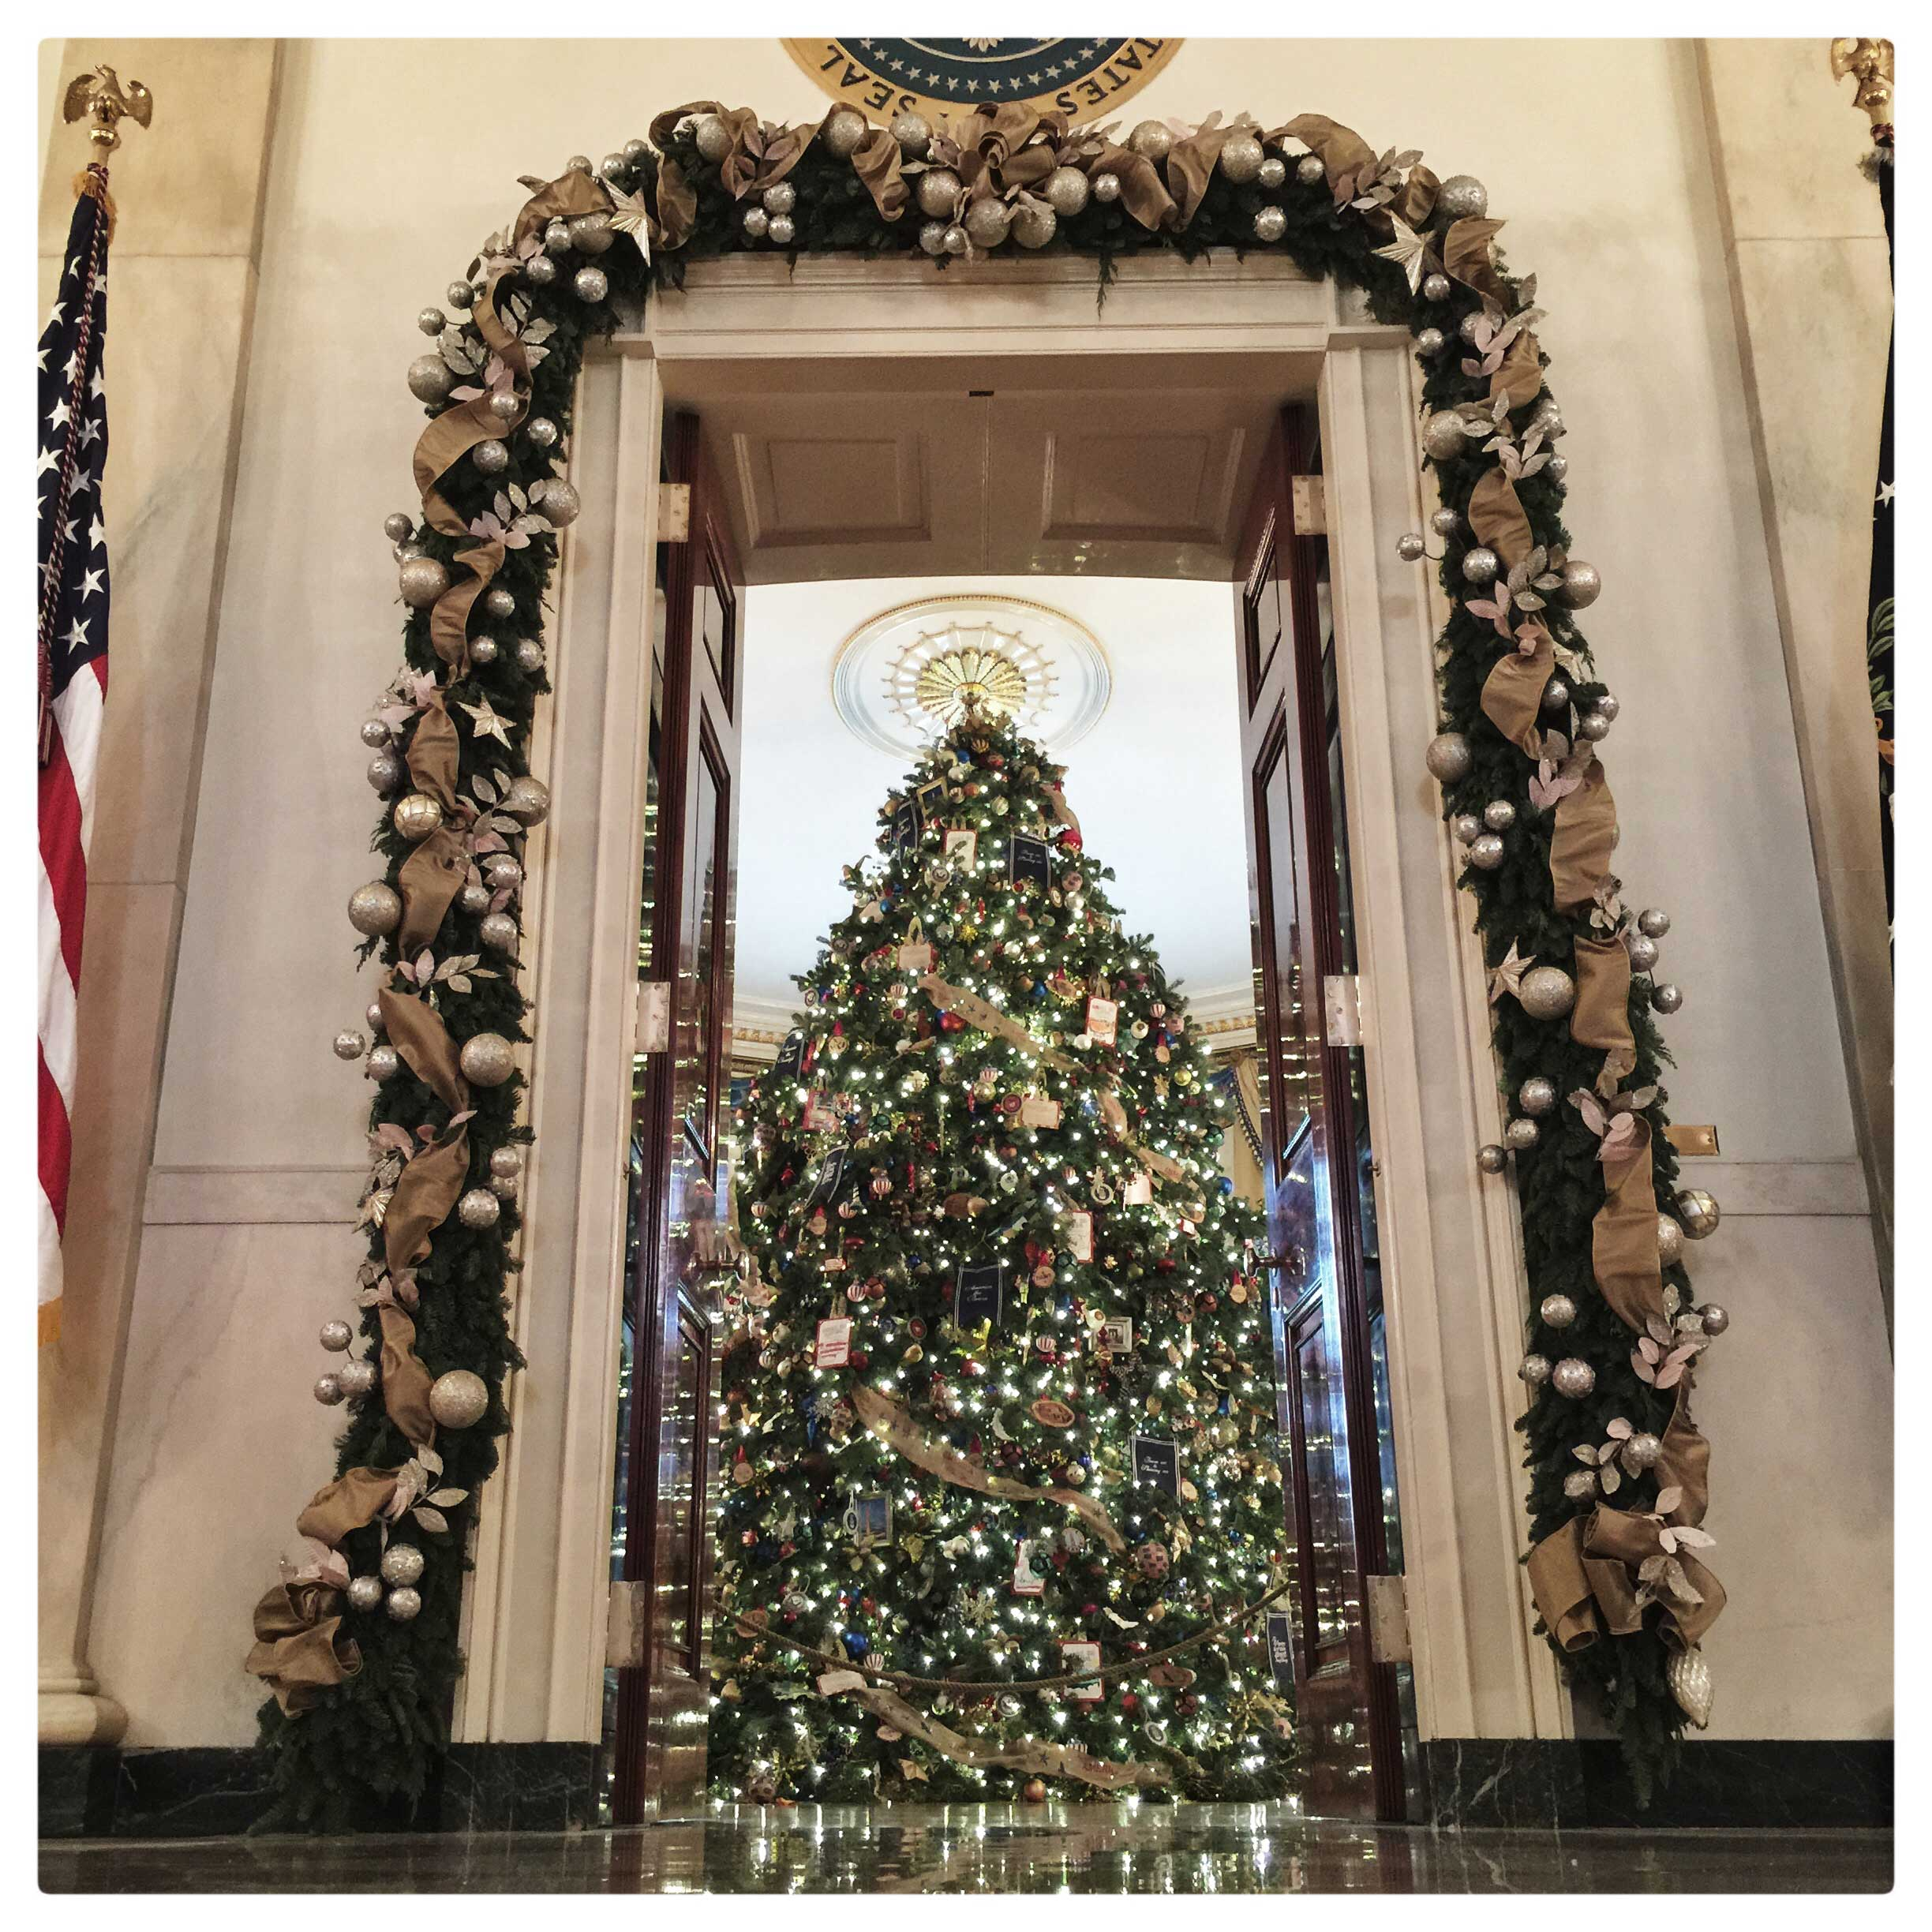 The official White House Christmas tree in the Blue Room at the White House. The 18 foot tree has over 2000 ornaments. A total of 26 Christmas trees are part of the decorations.